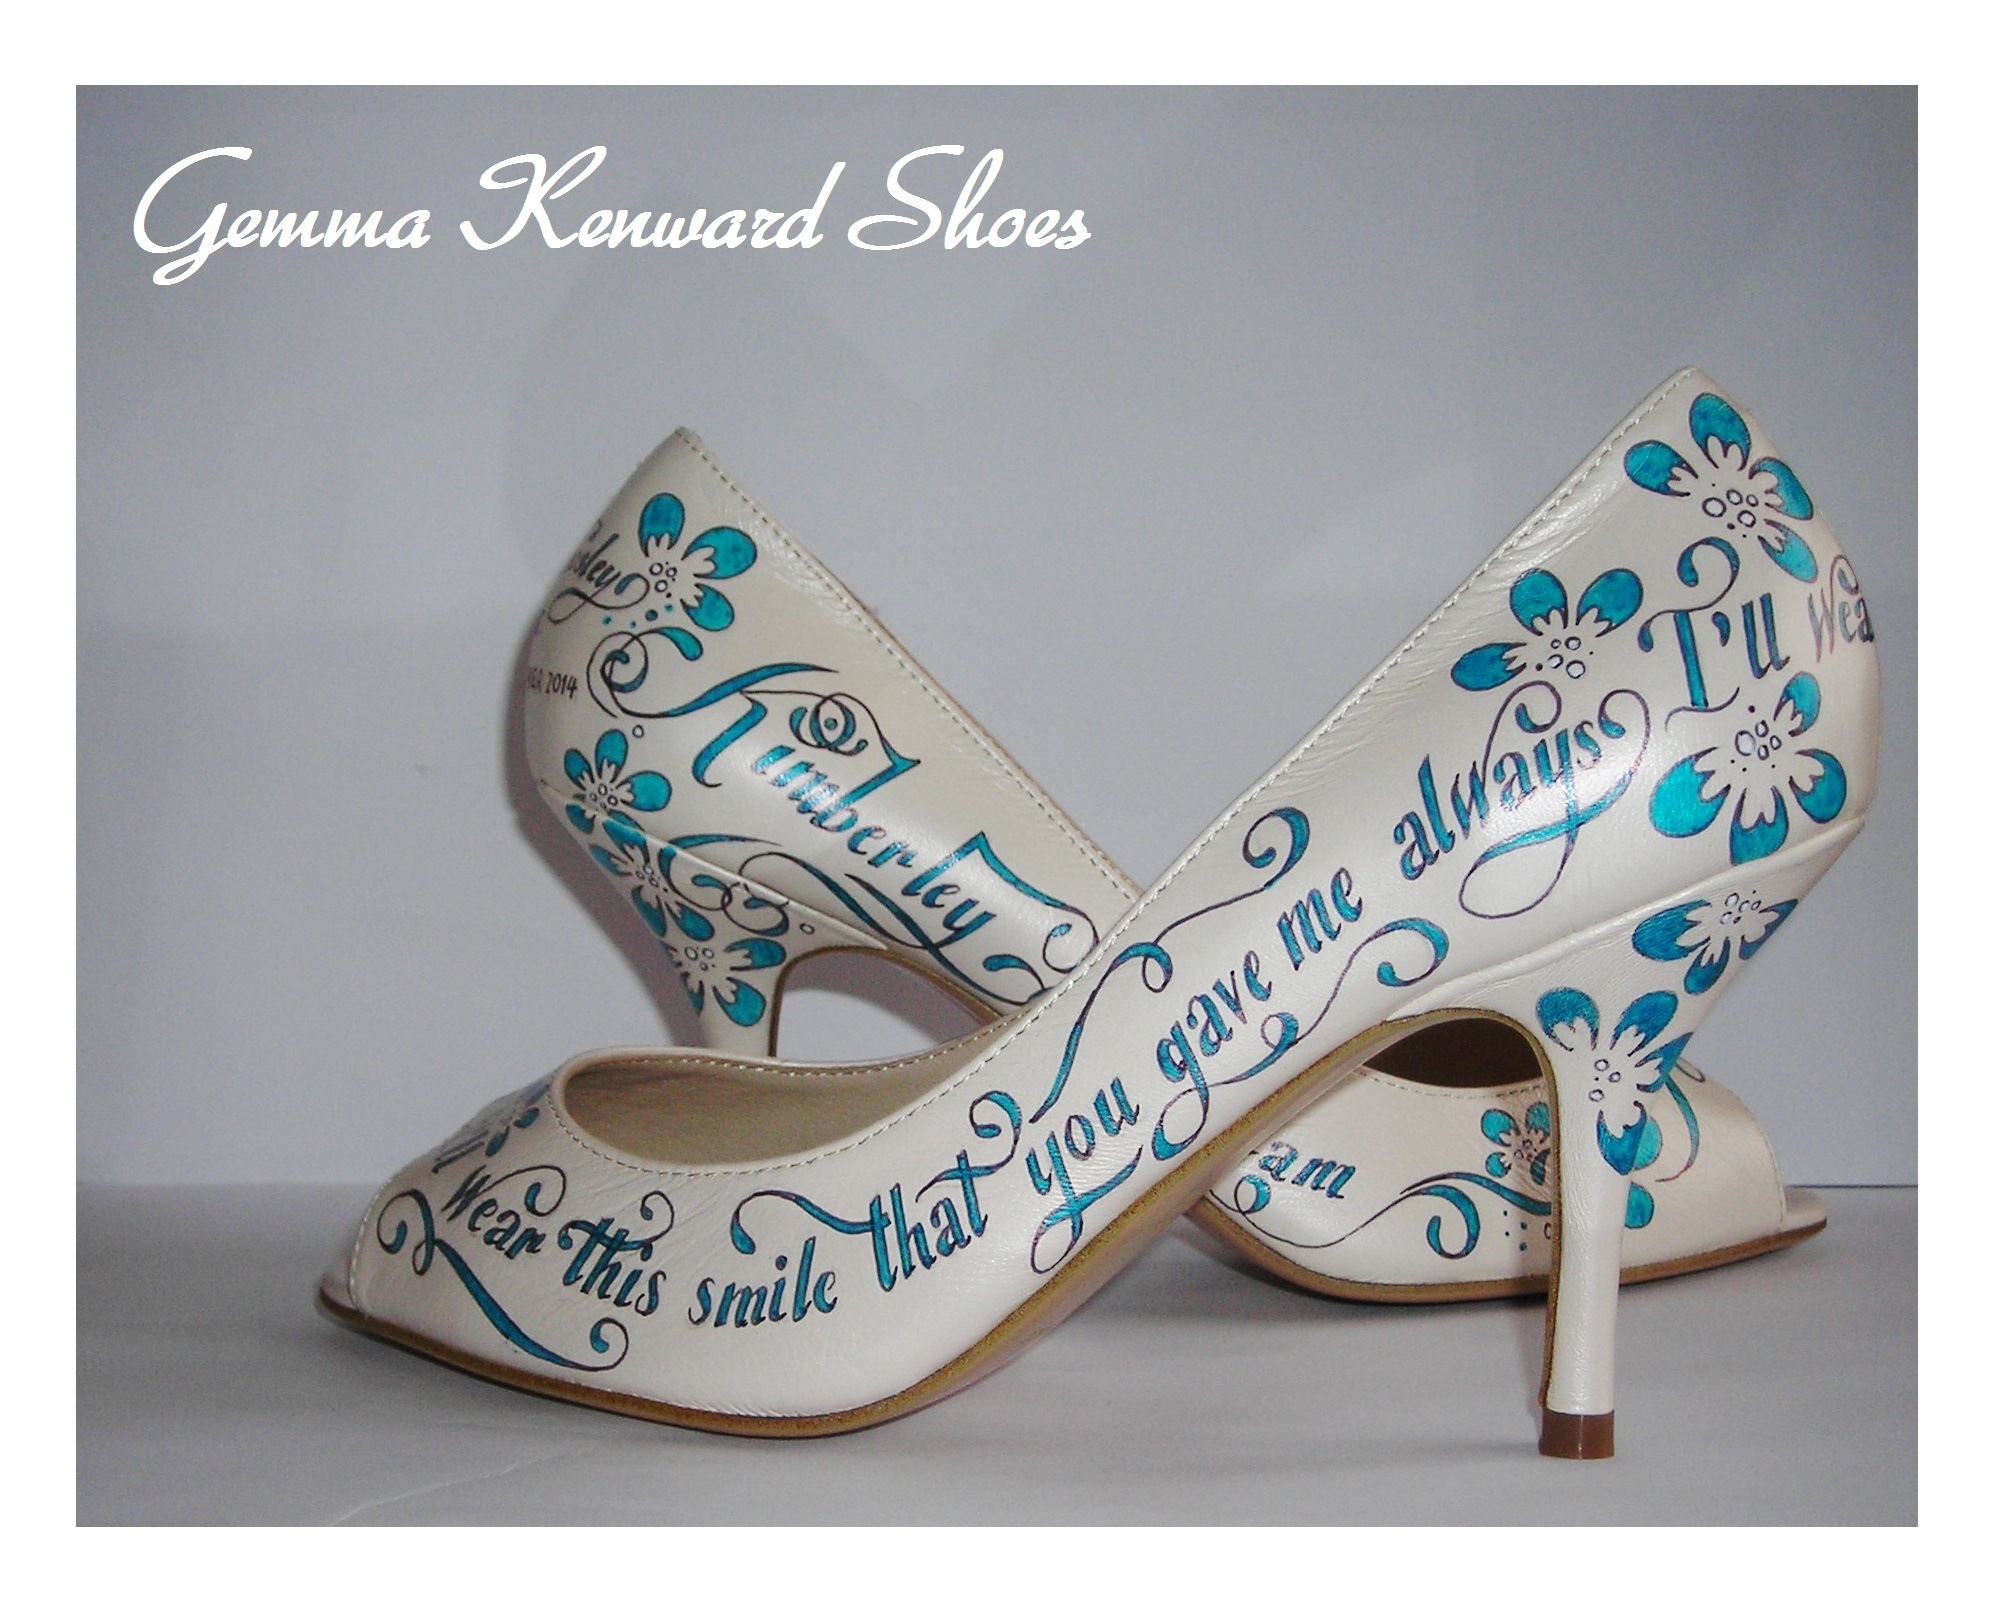 Blue and white bridal shoes personalised with lyrics and flowers